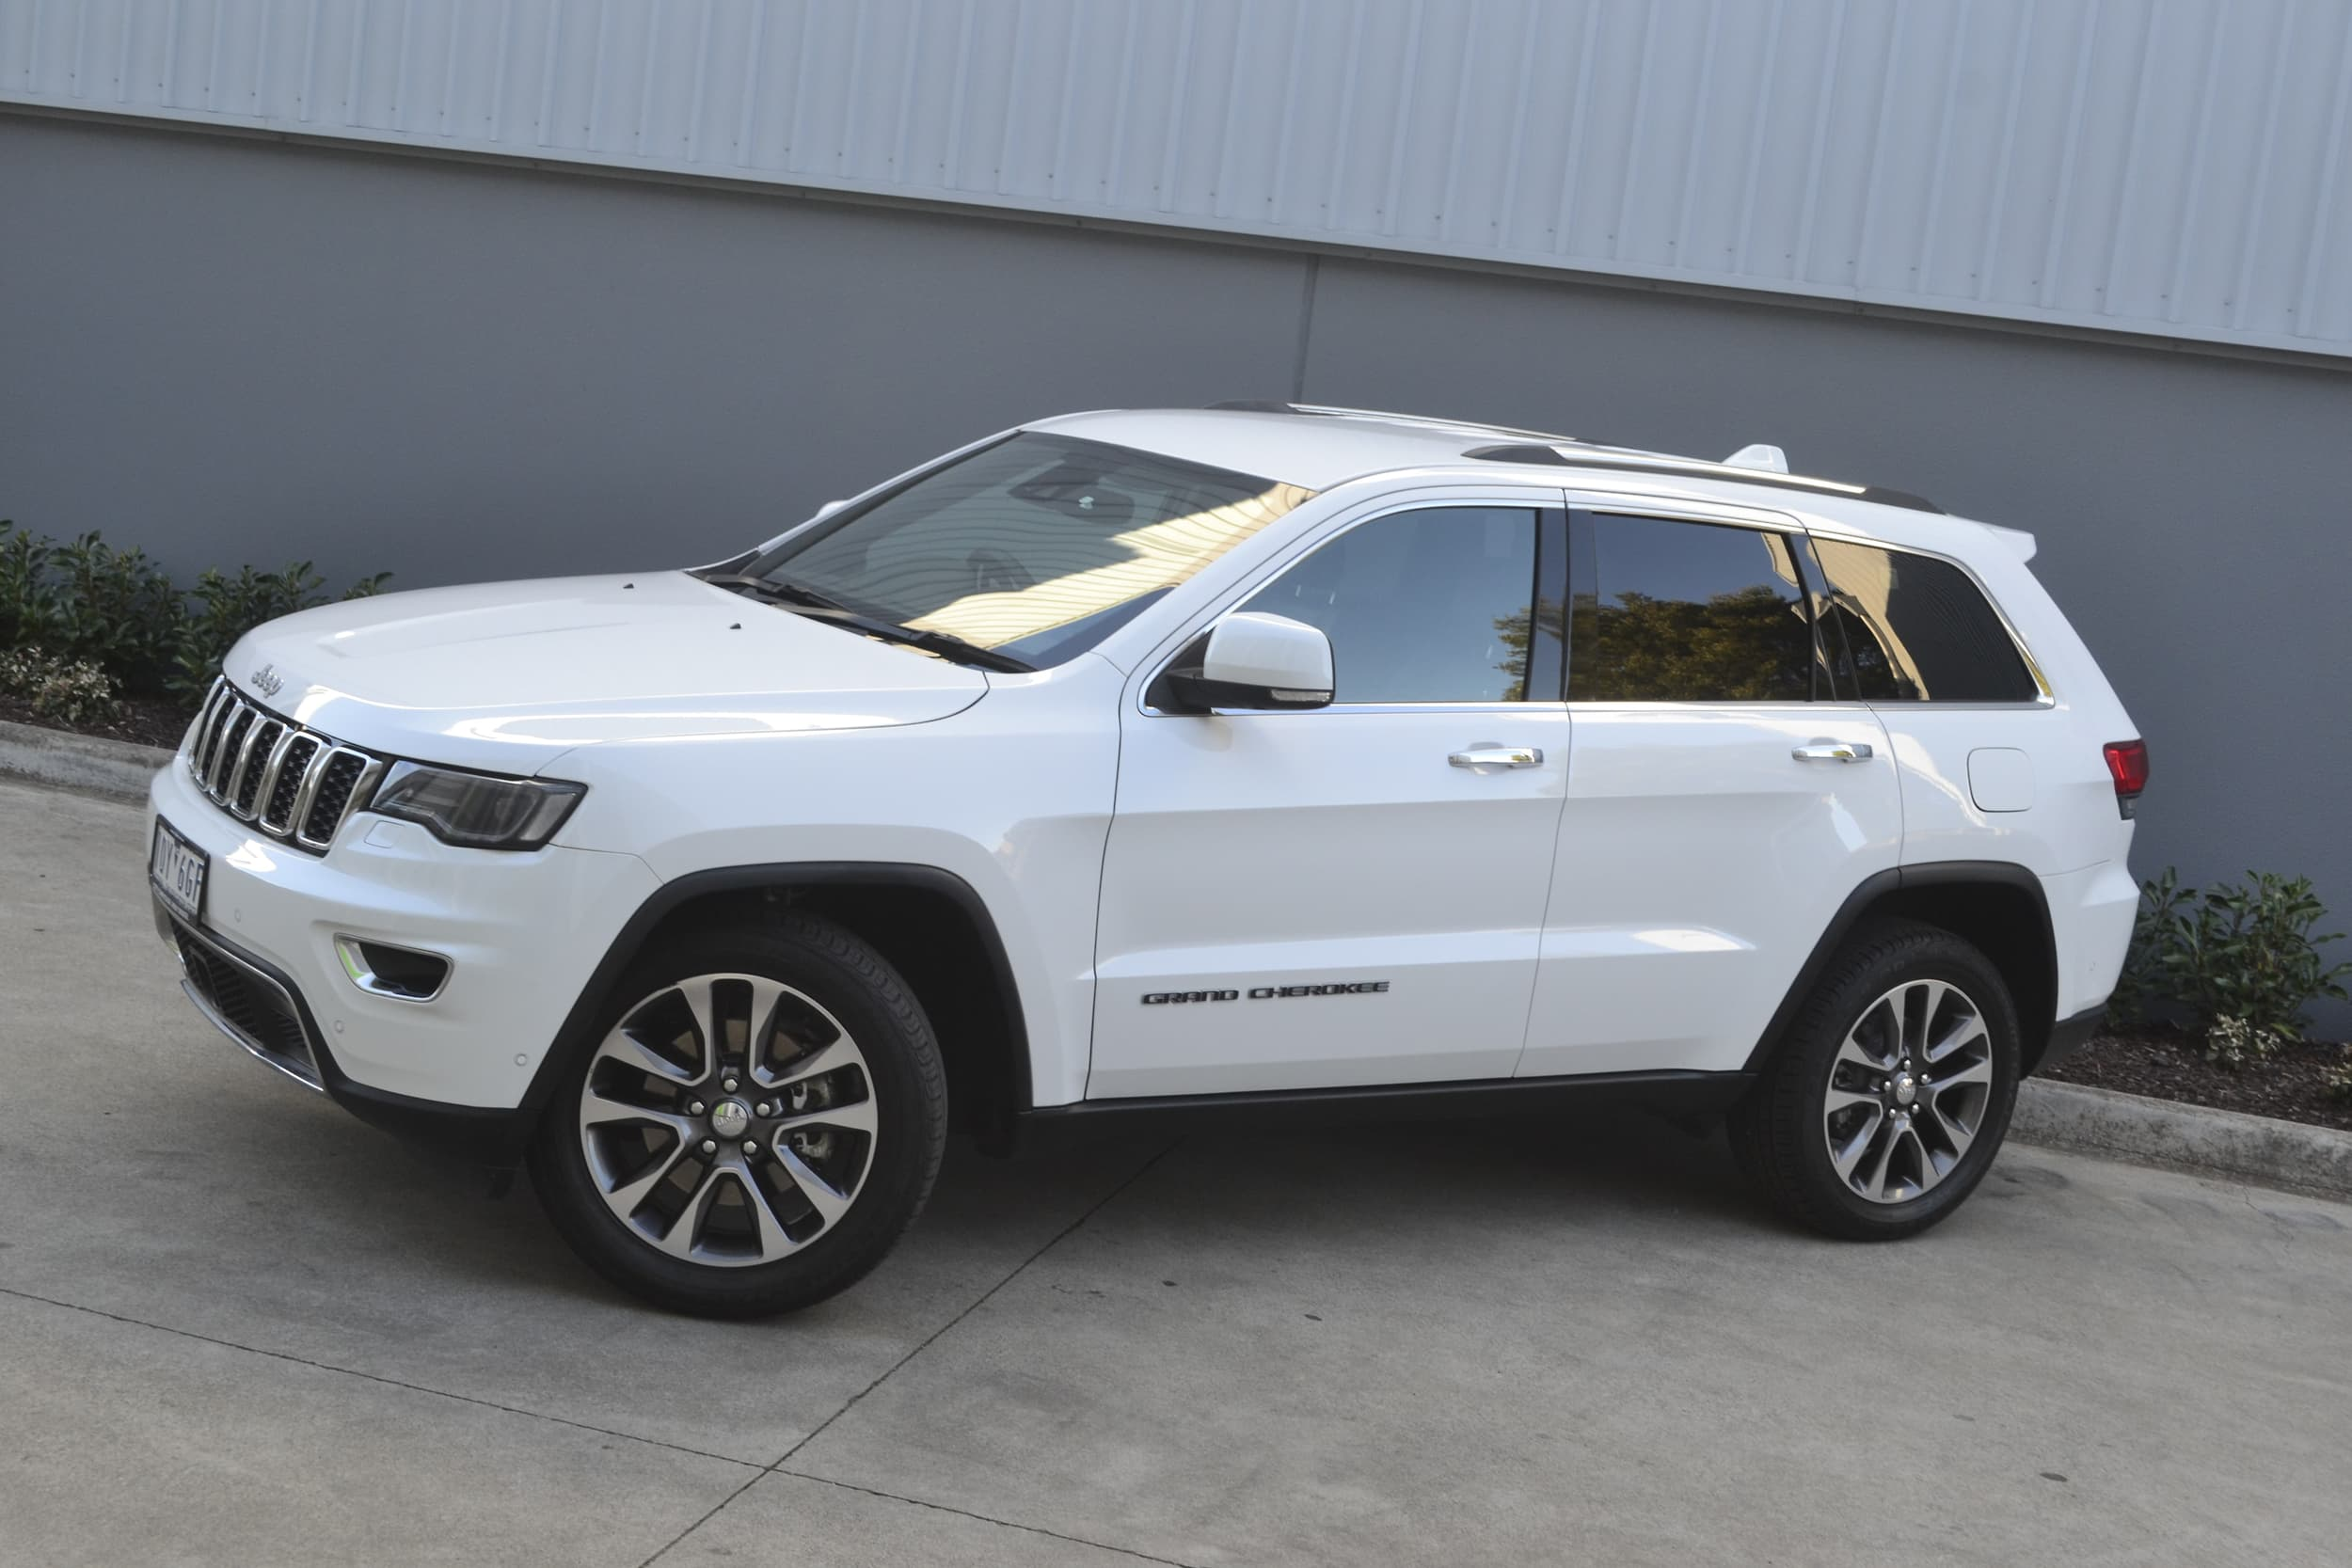 2019 Jeep Grand Cherokee Limited Auto 4x4 MY19 - image 29